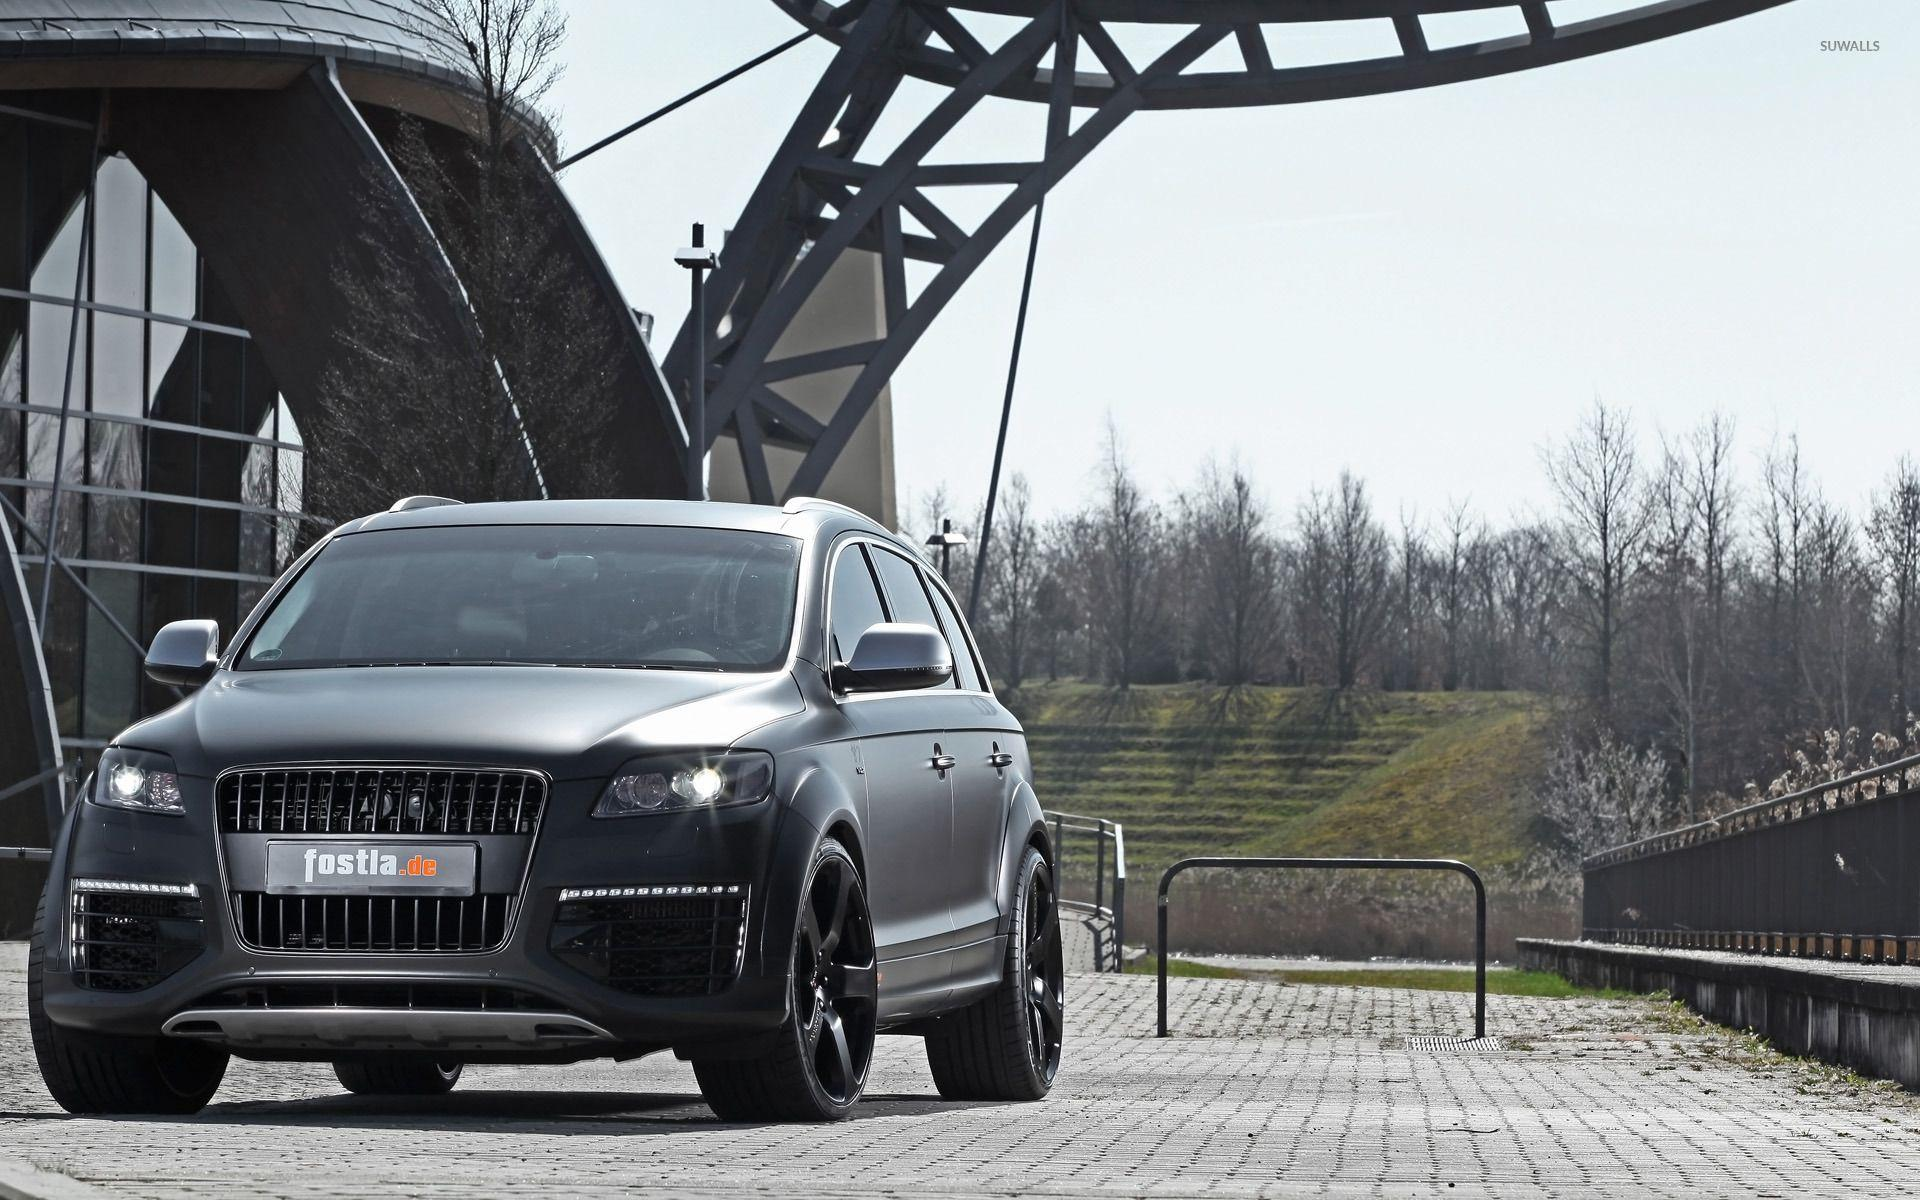 2012 Silver Fostla Audi Q7 front view wallpapers